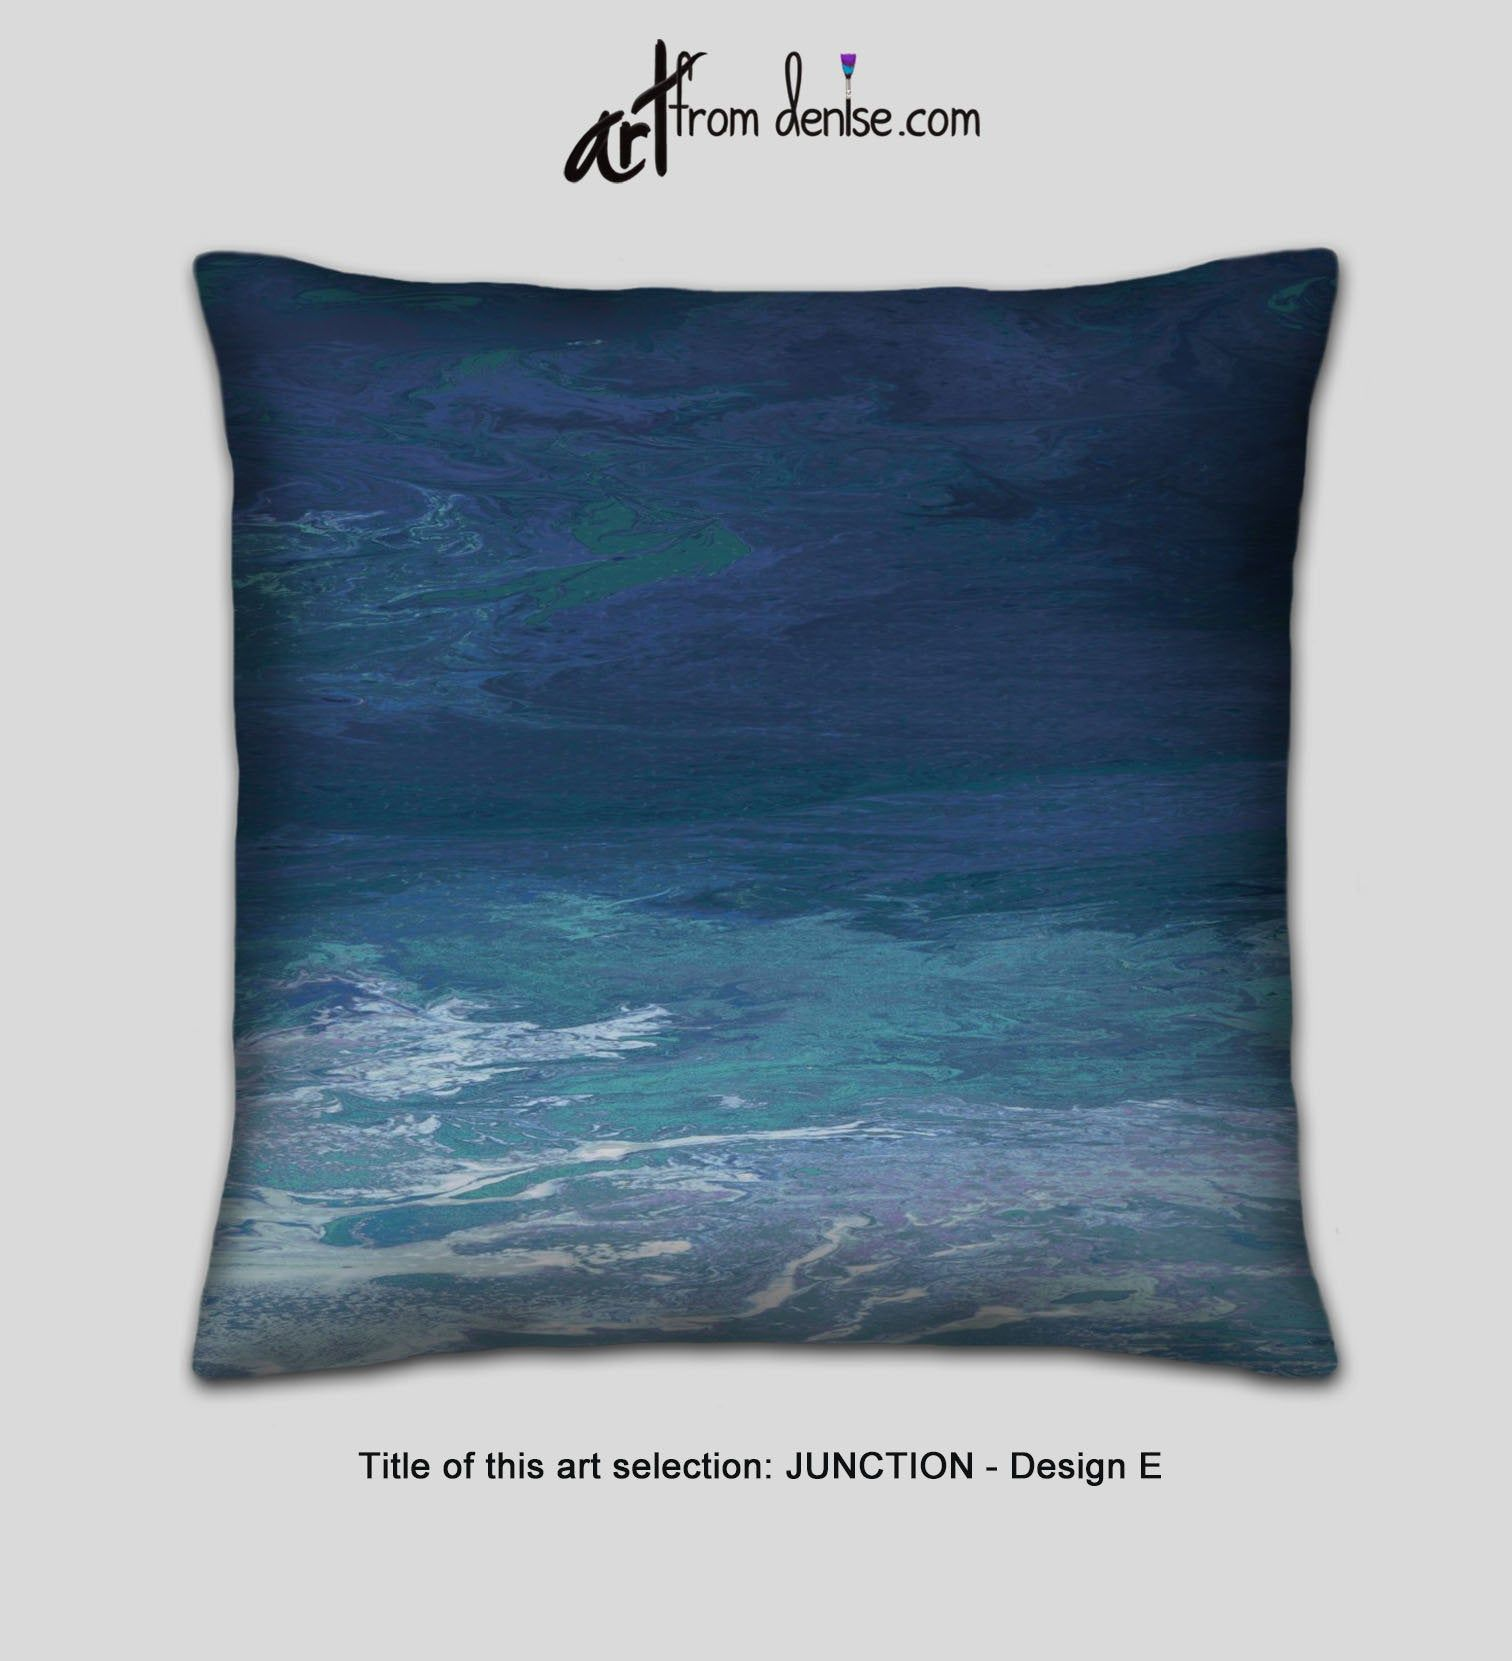 Teal Gray Navy Blue Decorative Pillows For Bed Decor Etsy In 2020 Navy Blue Decorative Pillows Bed Pillows Decorative Navy Blue Throw Pillows